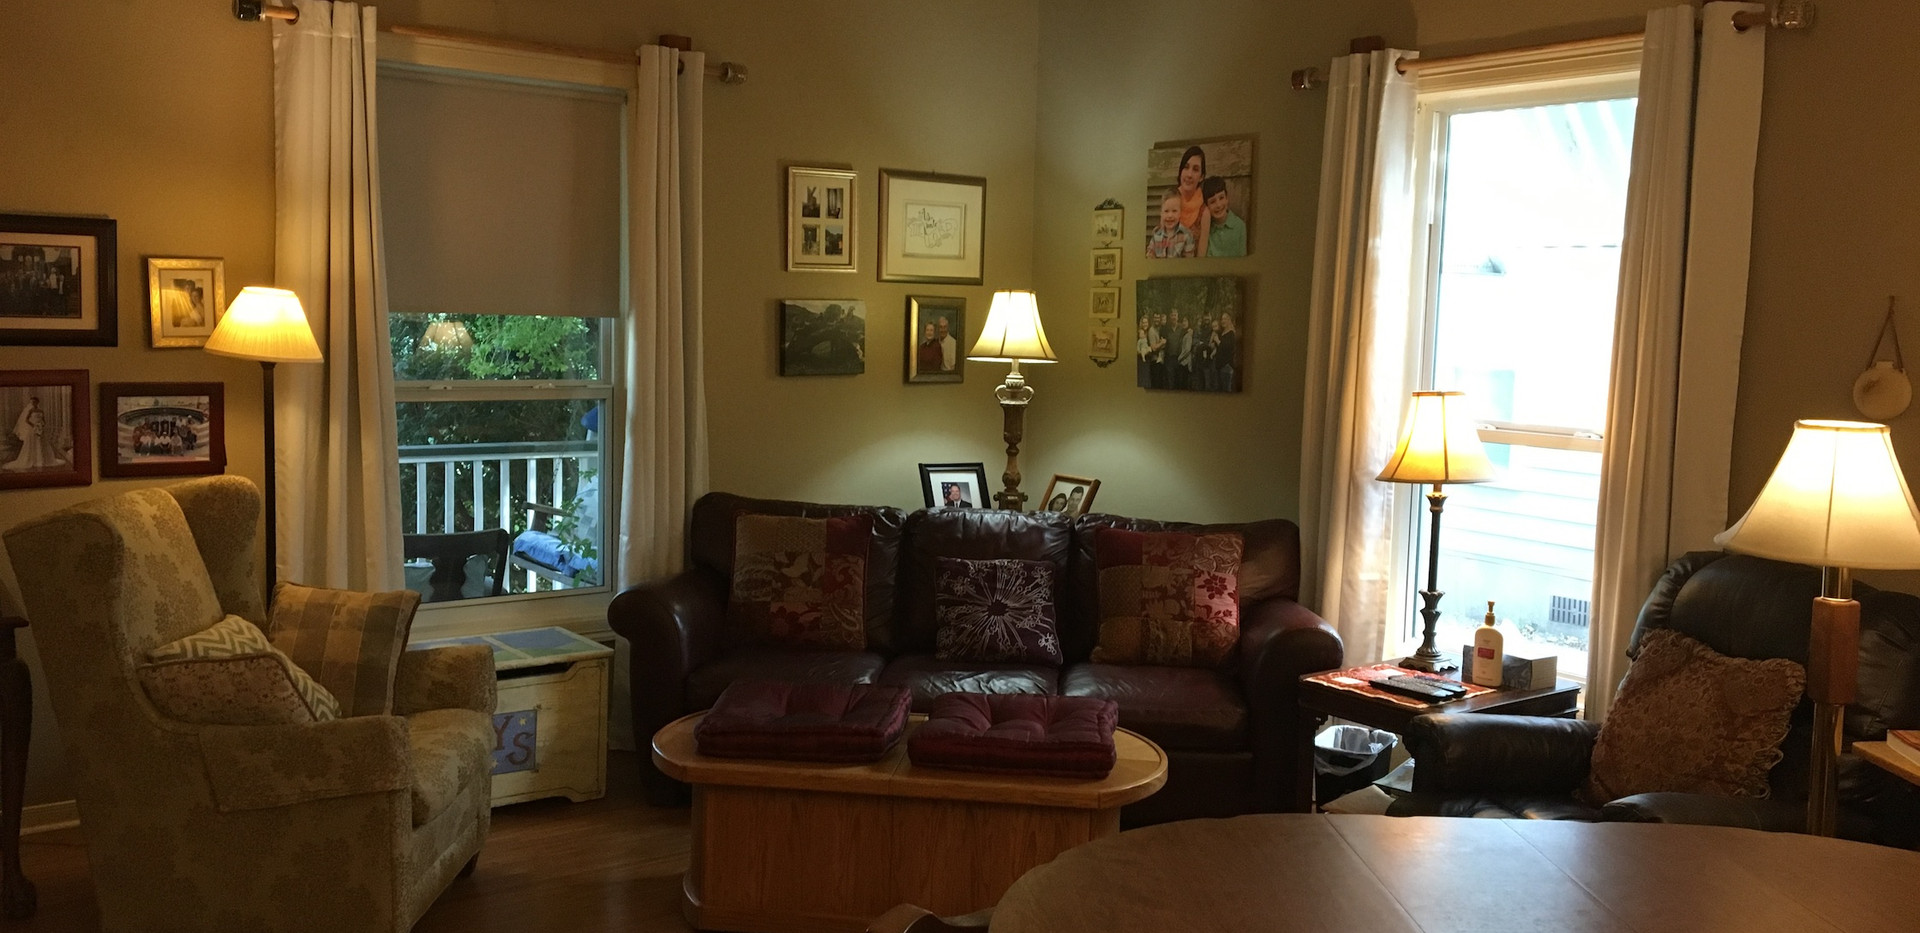 After living room - open drapes